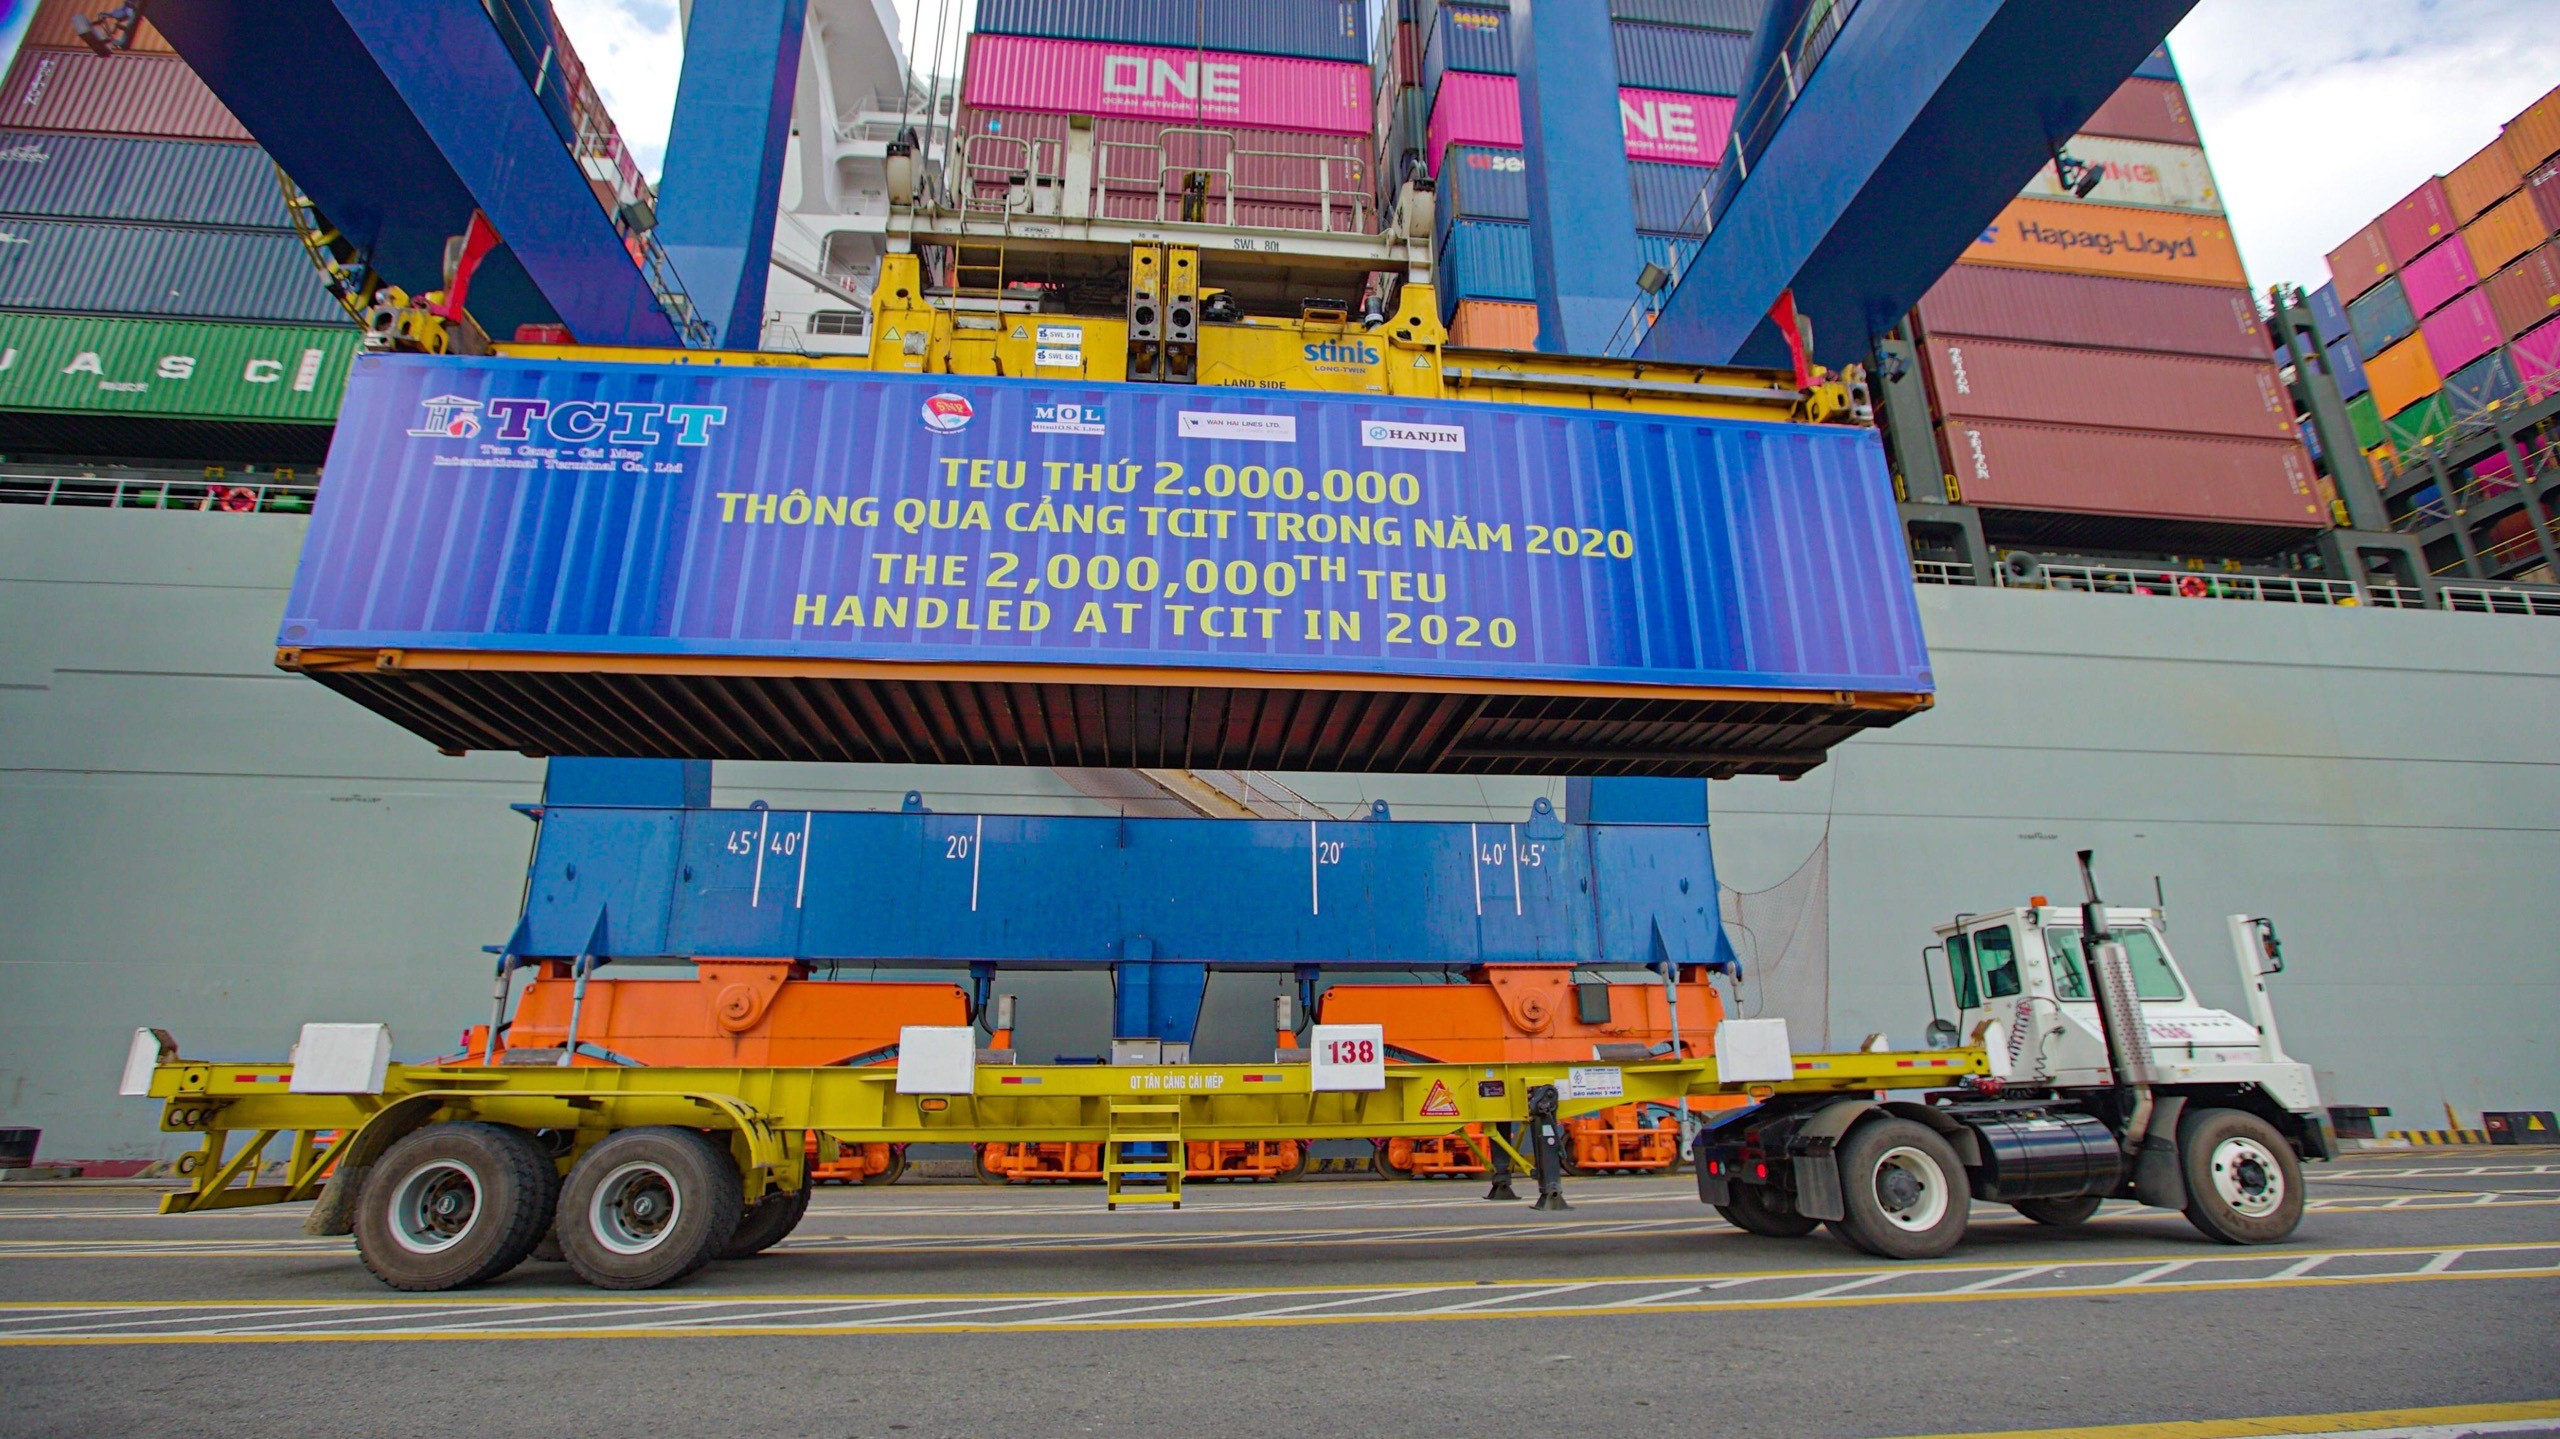 TAN CANG - CAI MEP INTERNATIONAL TERMINAL WELCOMES THE 2,000,000TH TEU IN 2020